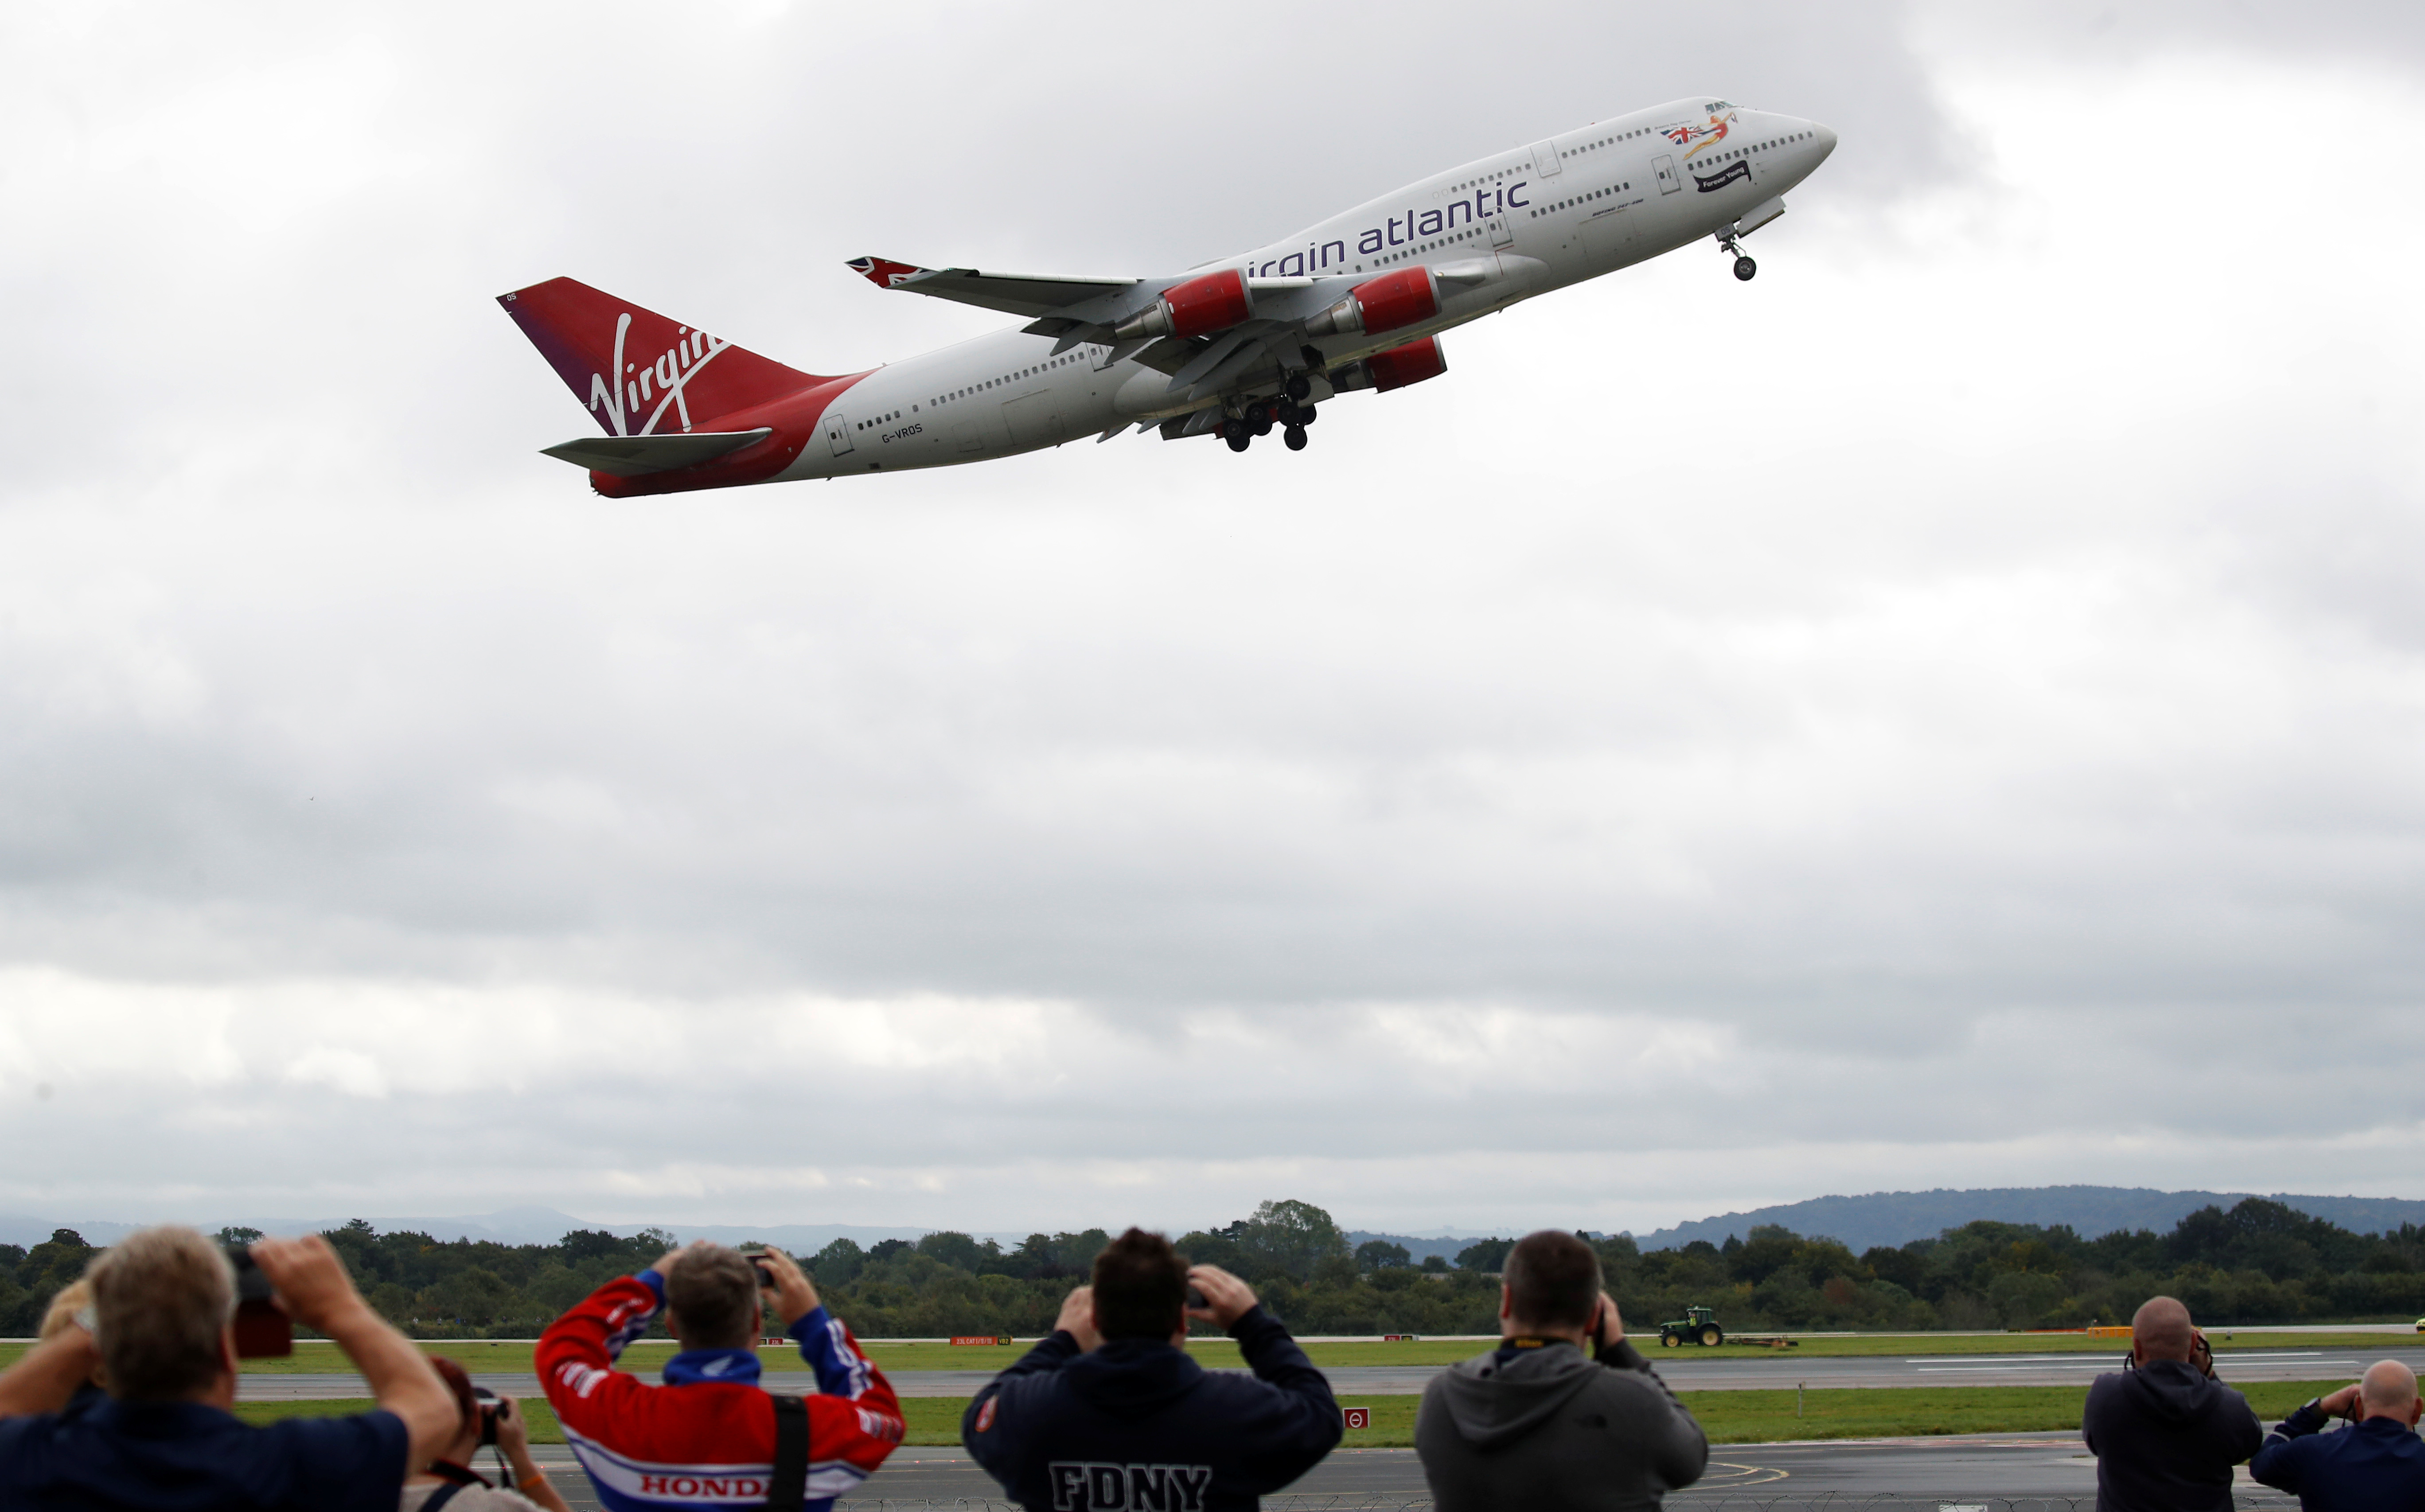 Aviation enthusiasts gather at the aviation viewing park to watch Virgin Atlantic's penultimate Boeing 747-400 aircraft 'Forever Young' depart for the final time before being retired from the fleet at Manchester Airport, Britain, September 8, 2020. REUTERS/Phil Noble